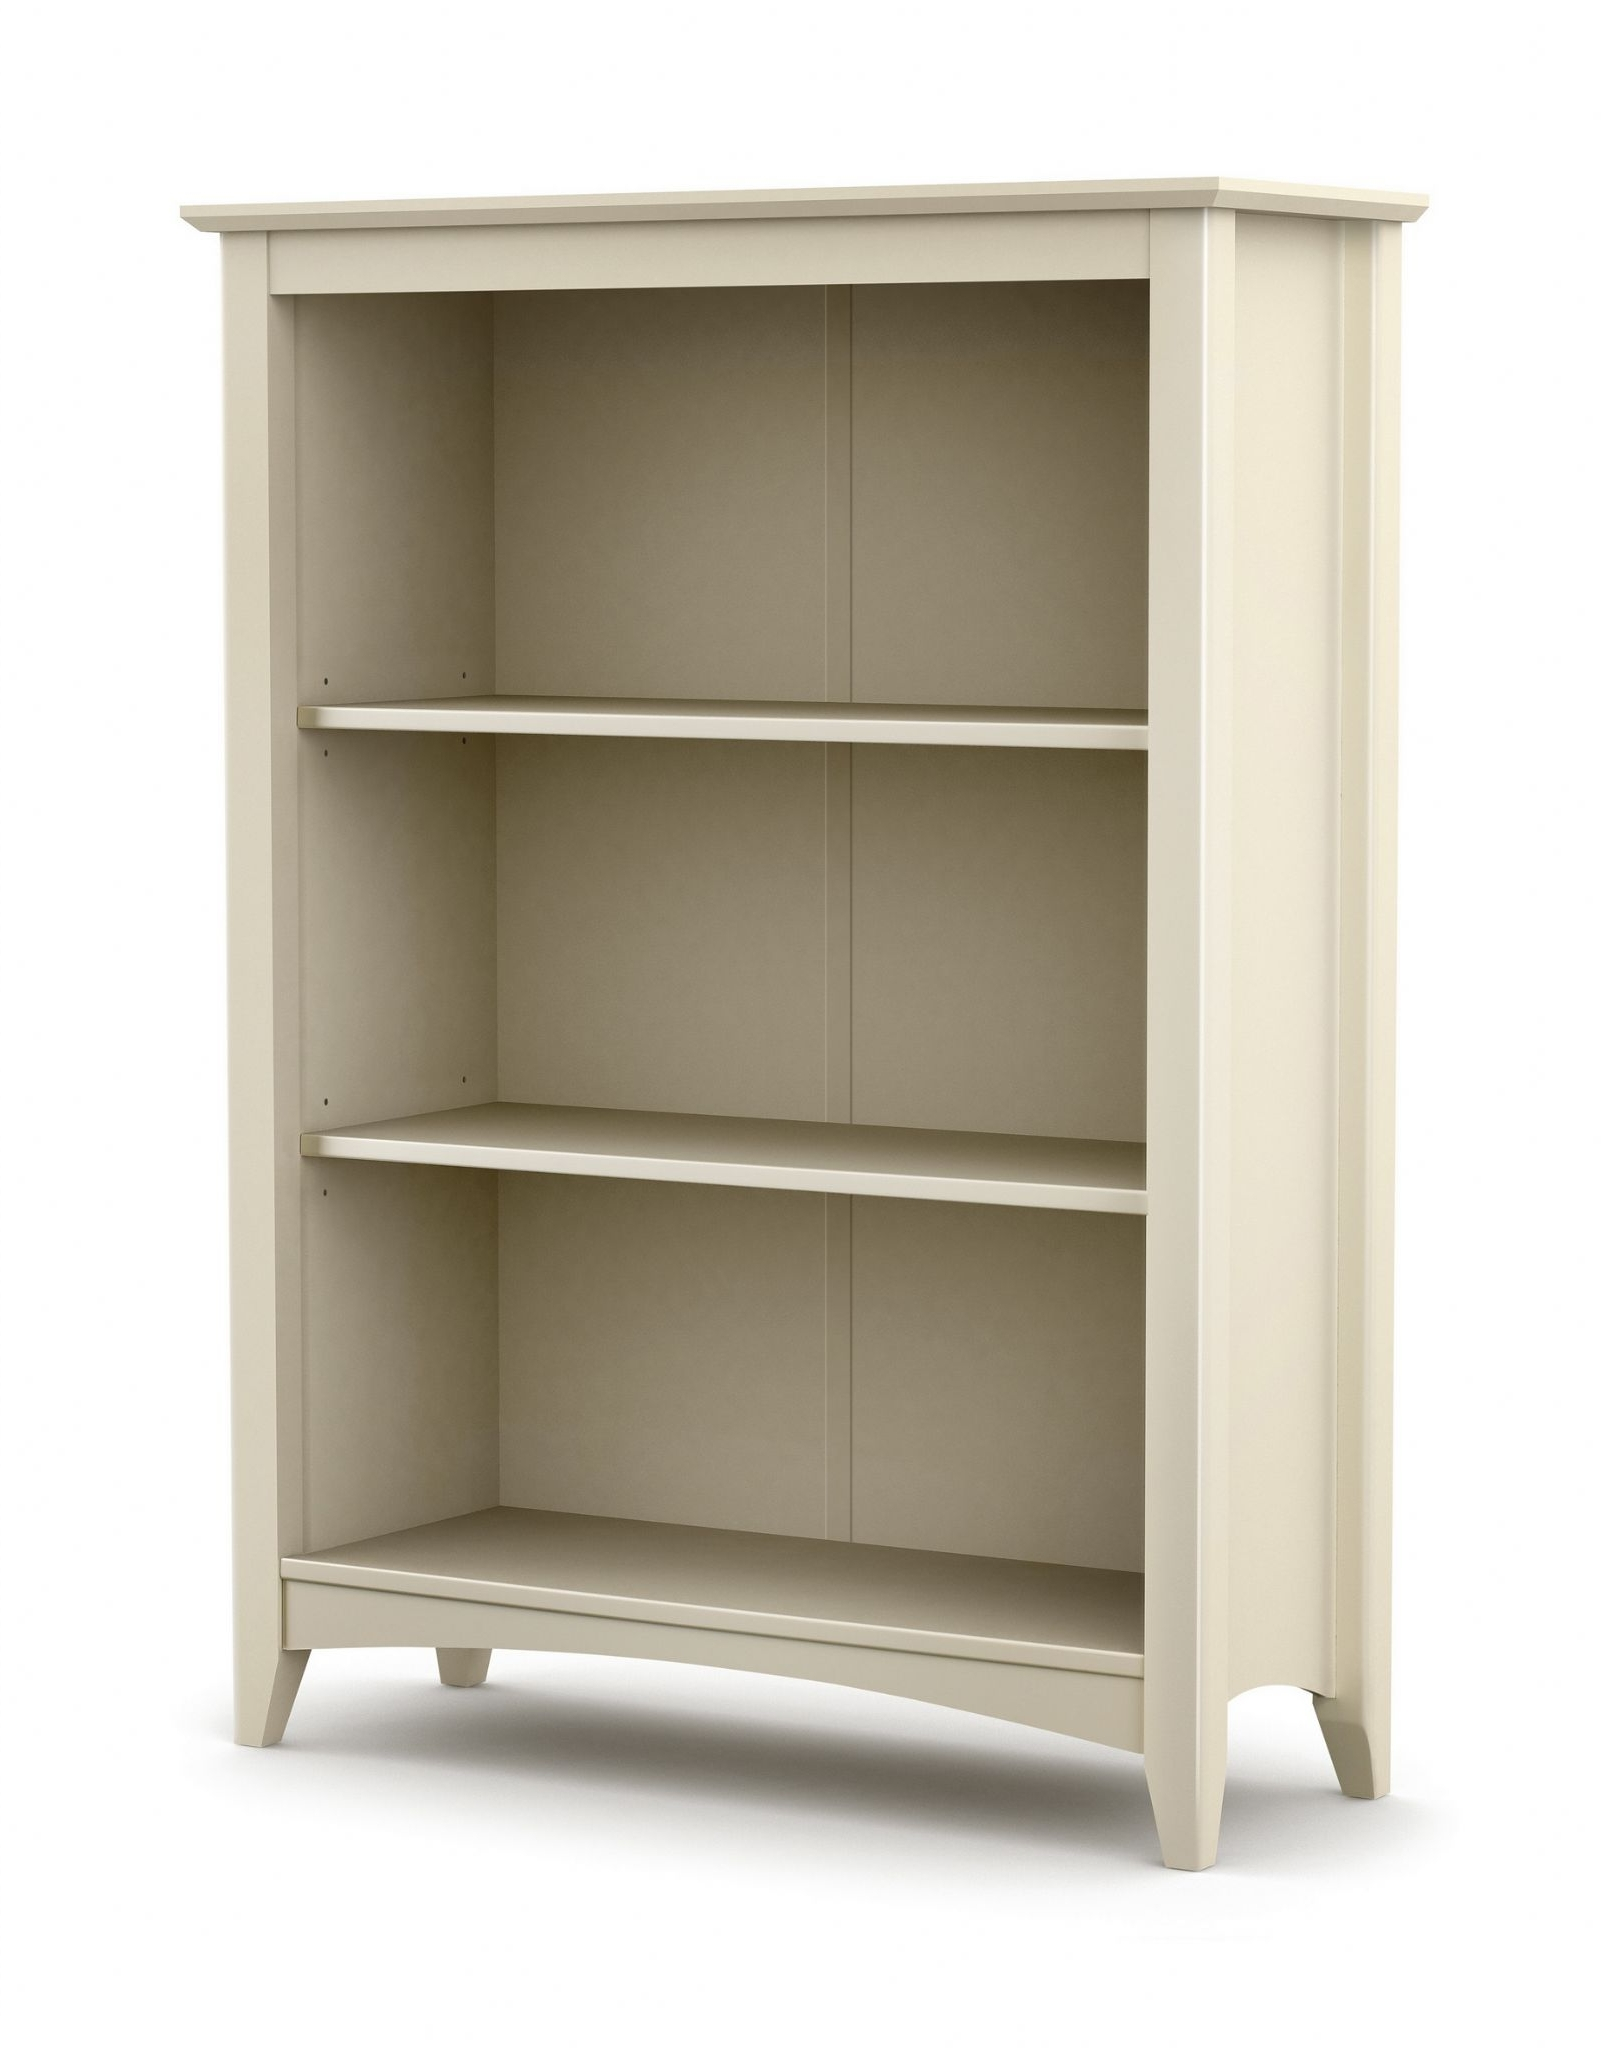 Off White Bookcases Intended For Most Current Small Bookcases Buy A Small Bookcase Online From Big Blu – Houston (View 12 of 15)